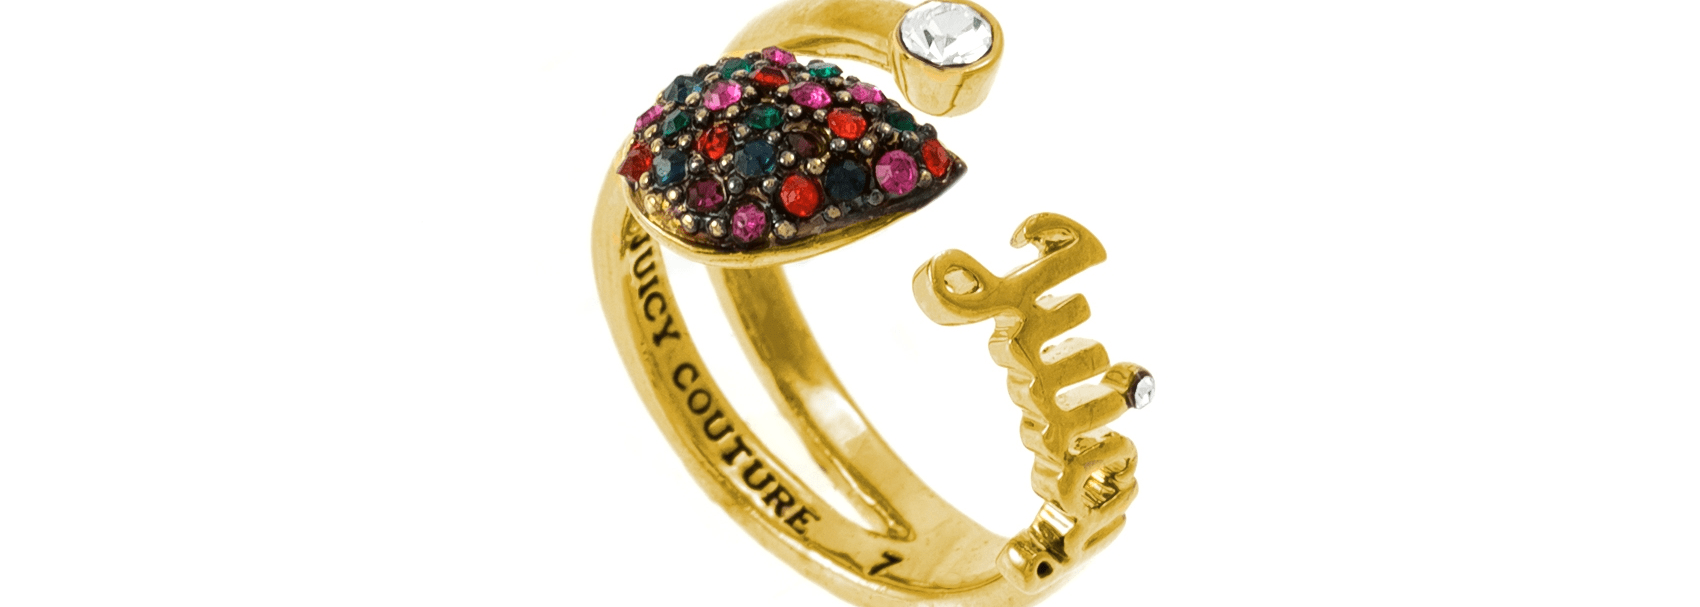 JUICY COUTURE - Δαχτυλίδι GYPSET RING FACTORY OUTLET